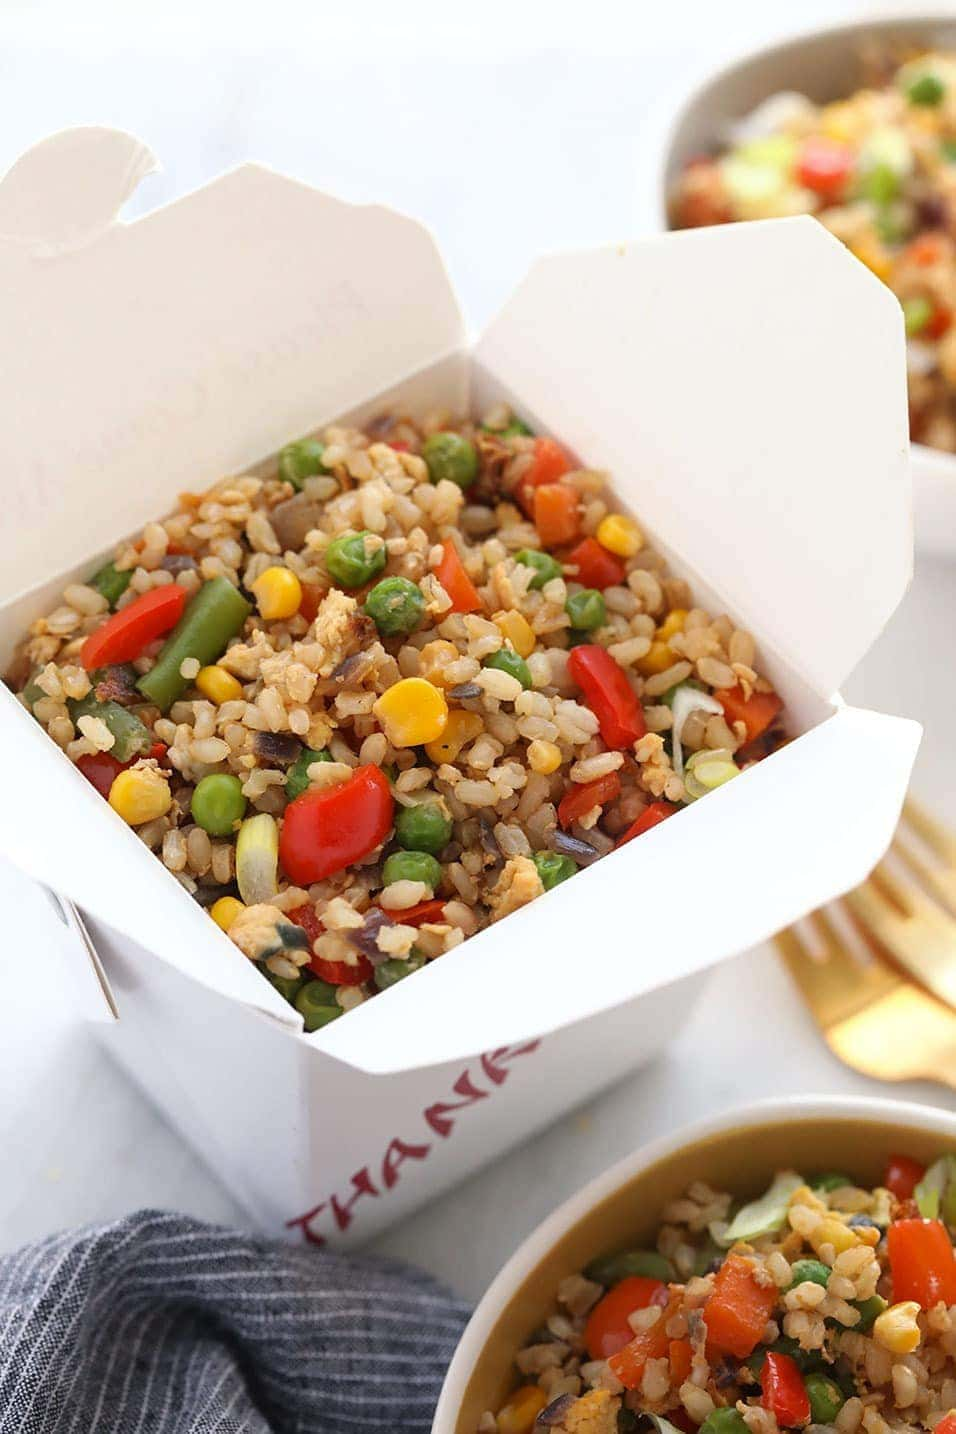 Fried rice in a take out container